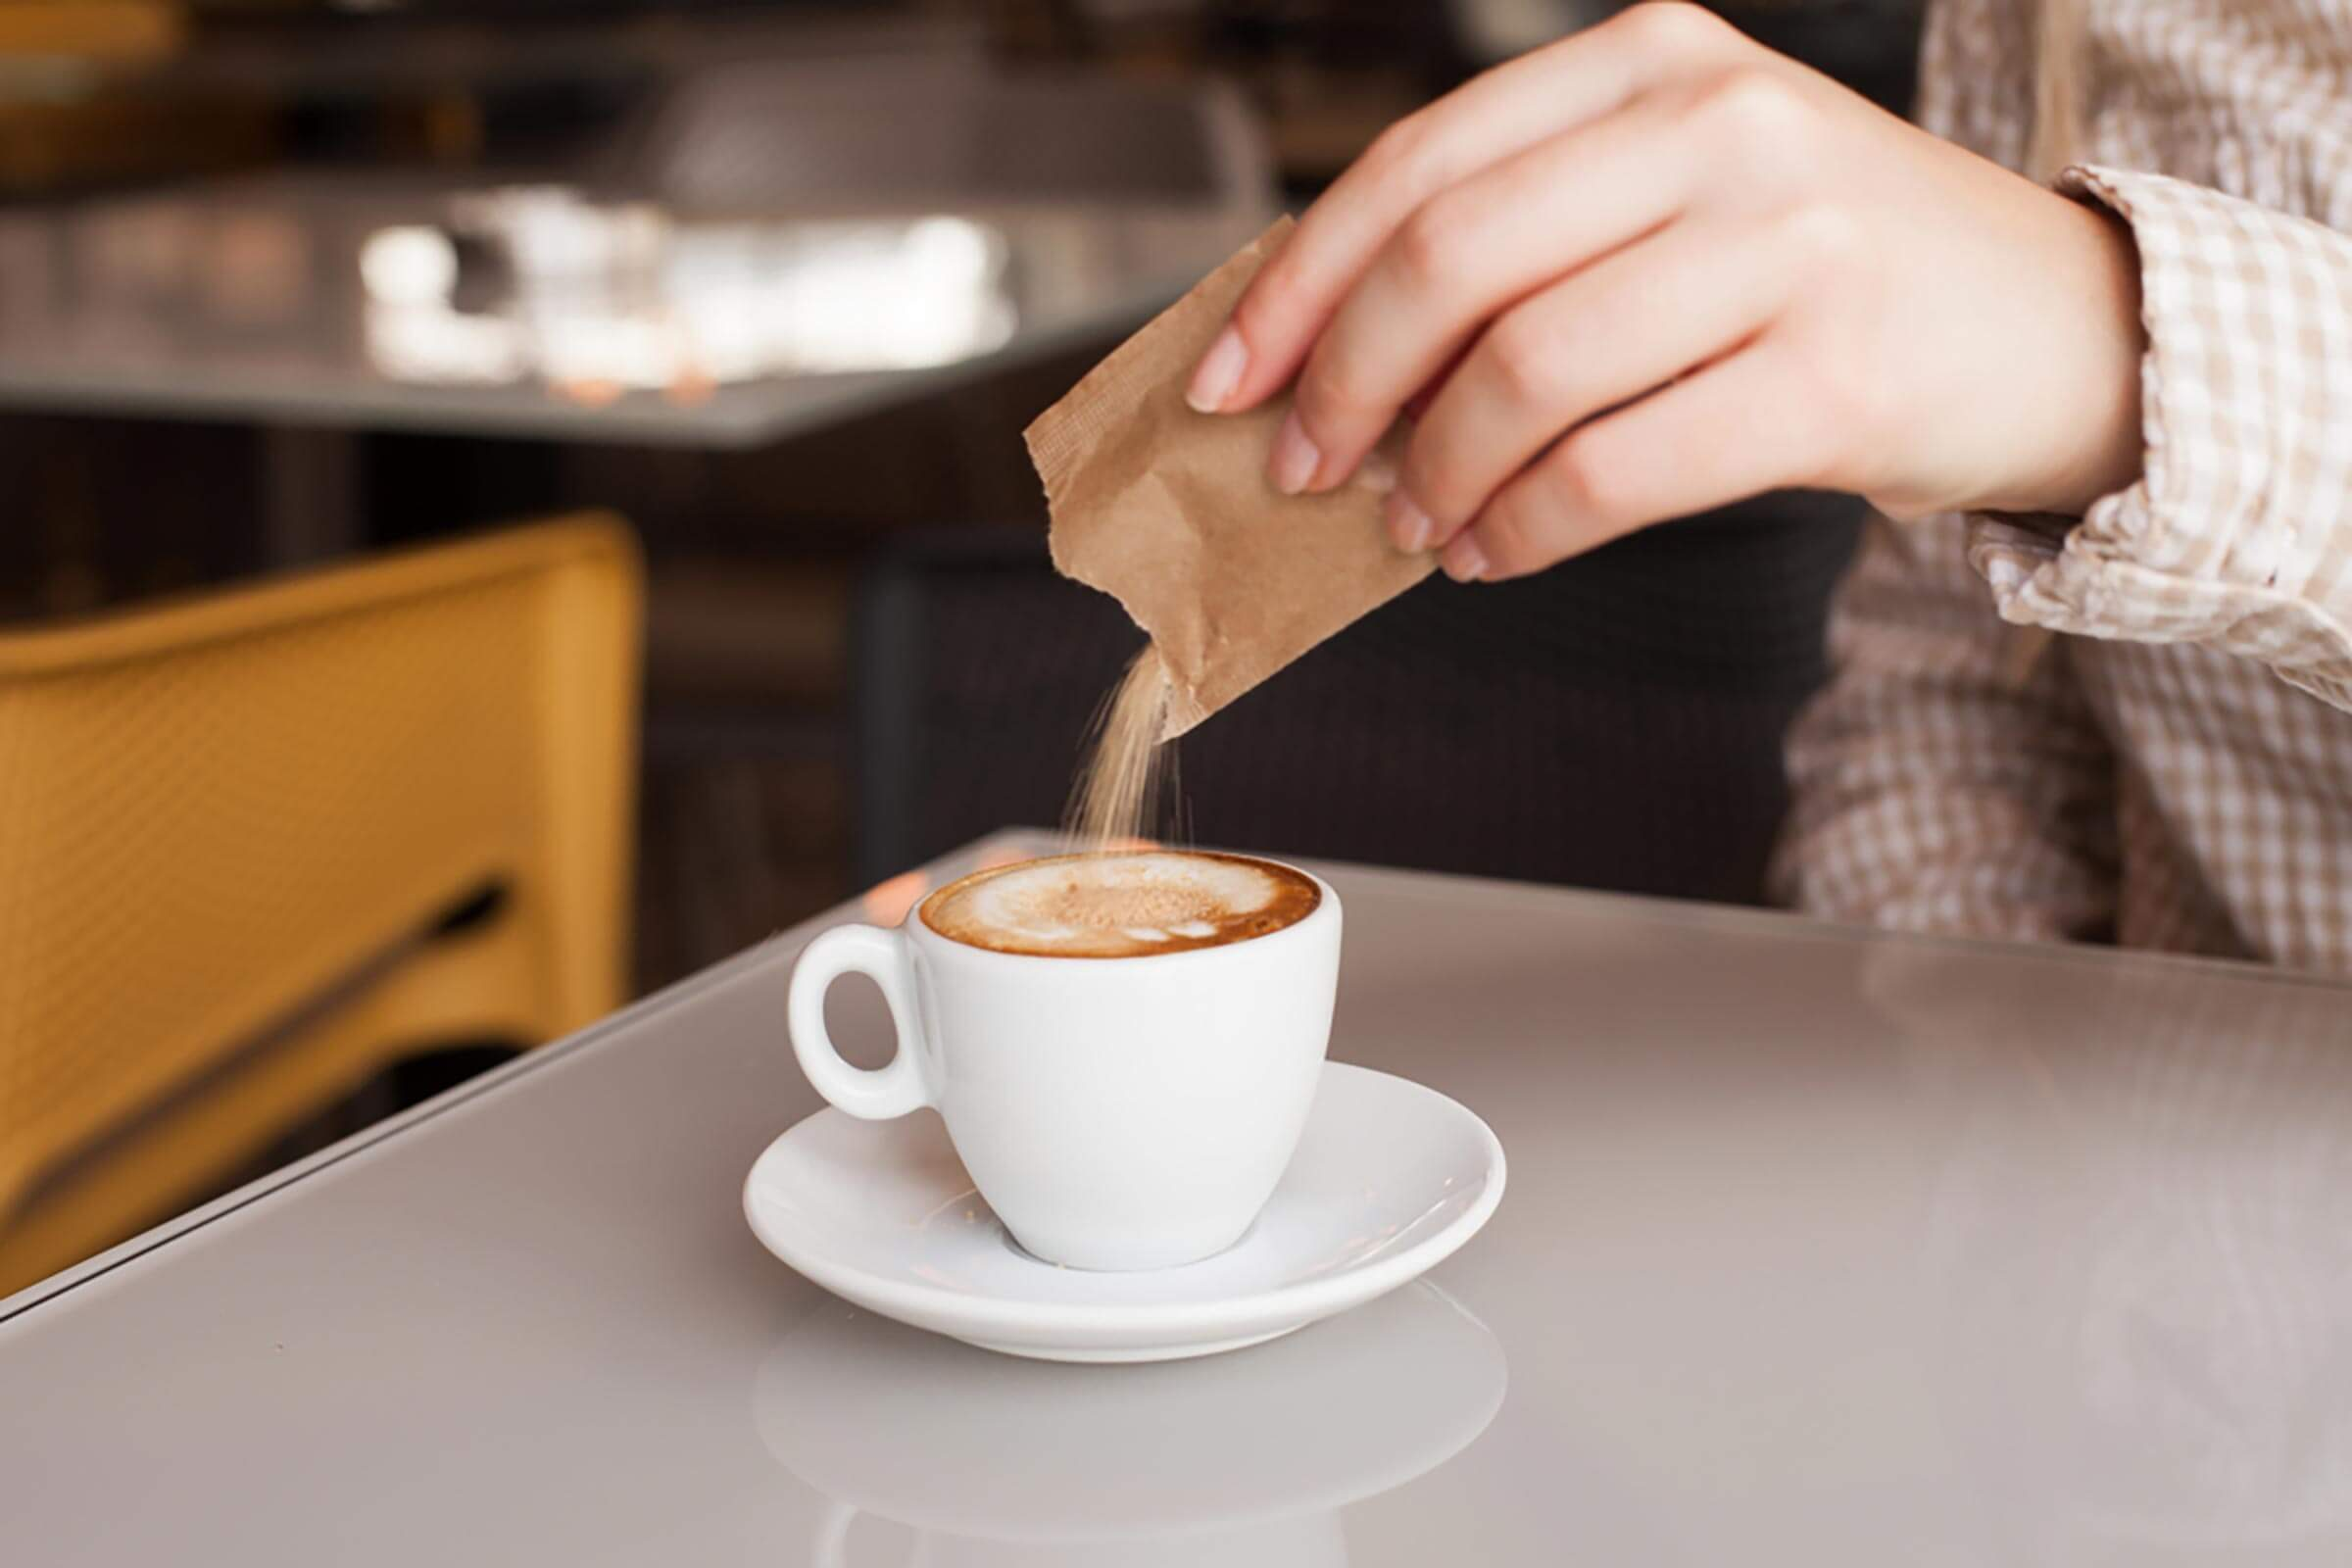 Woman adding sugar in coffee